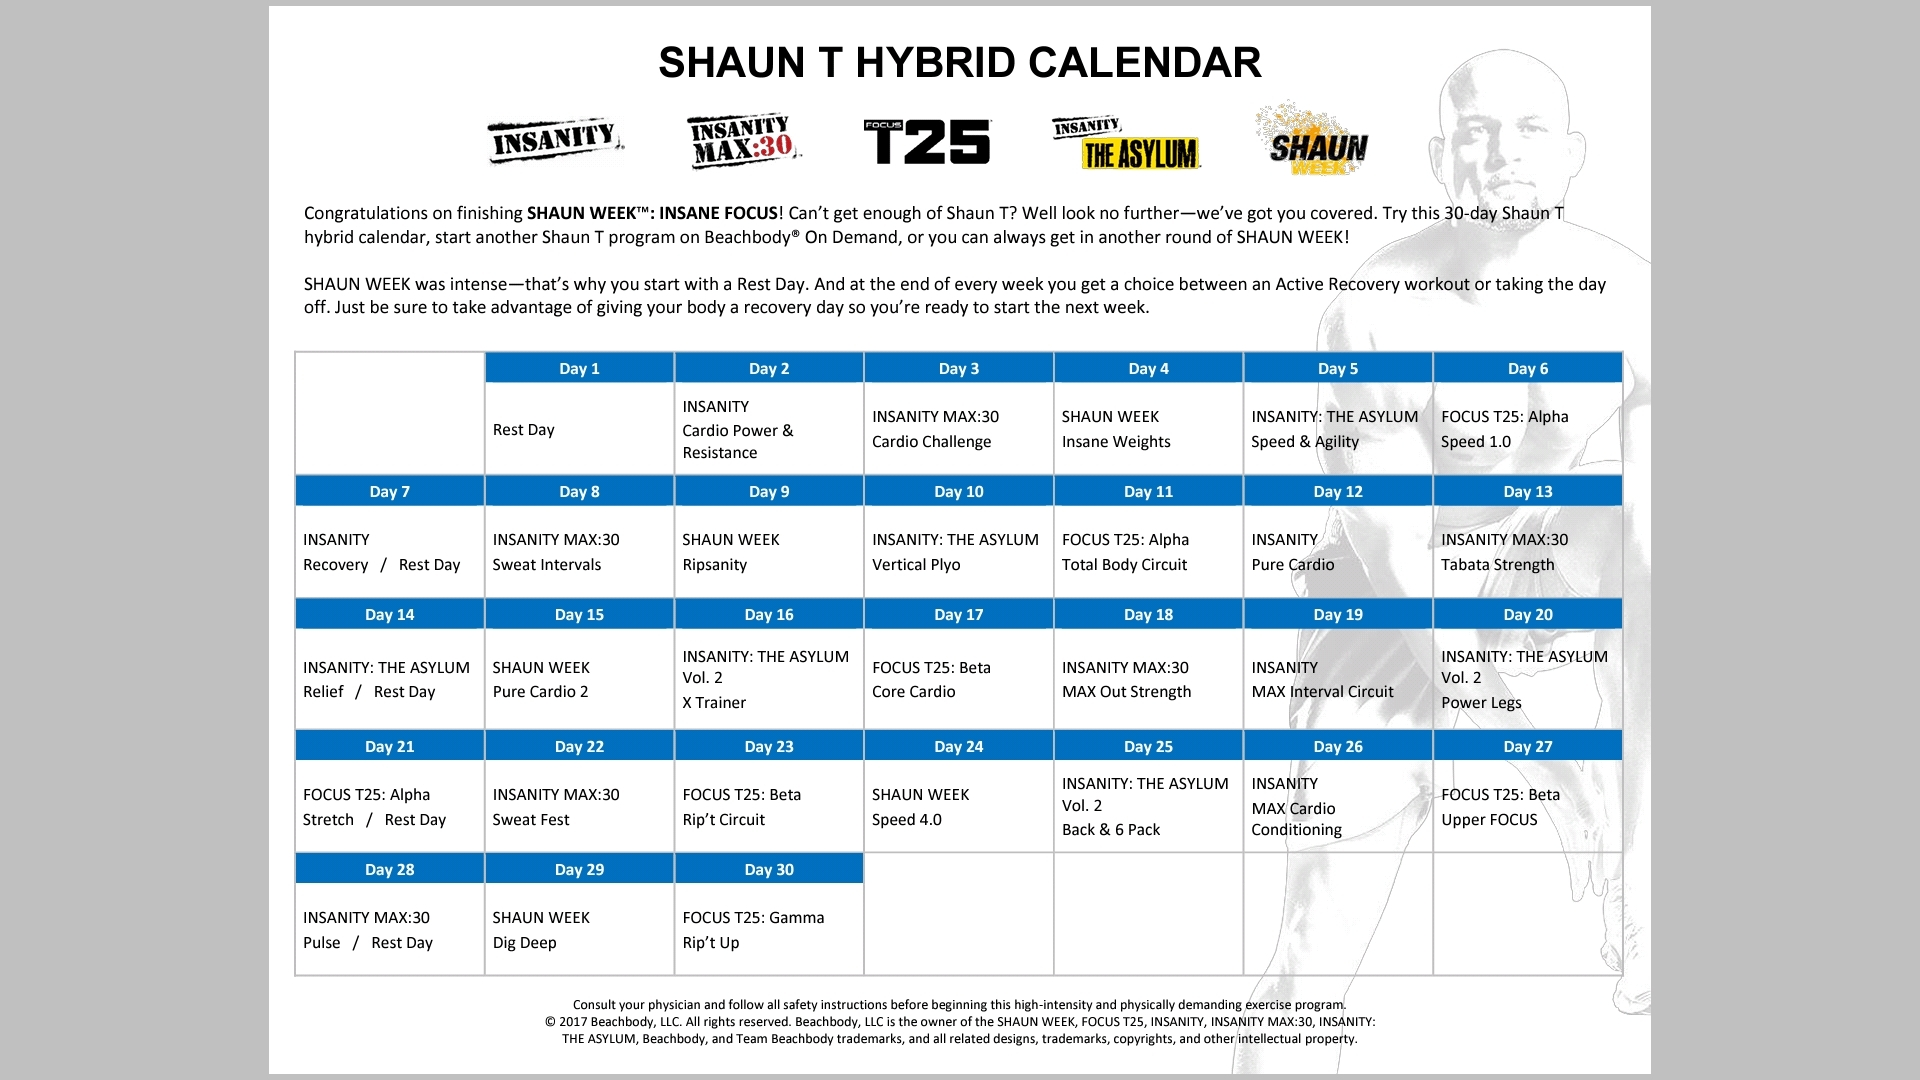 Shaun T Hip Hop Abs Schedule - Calendar Inspiration Design